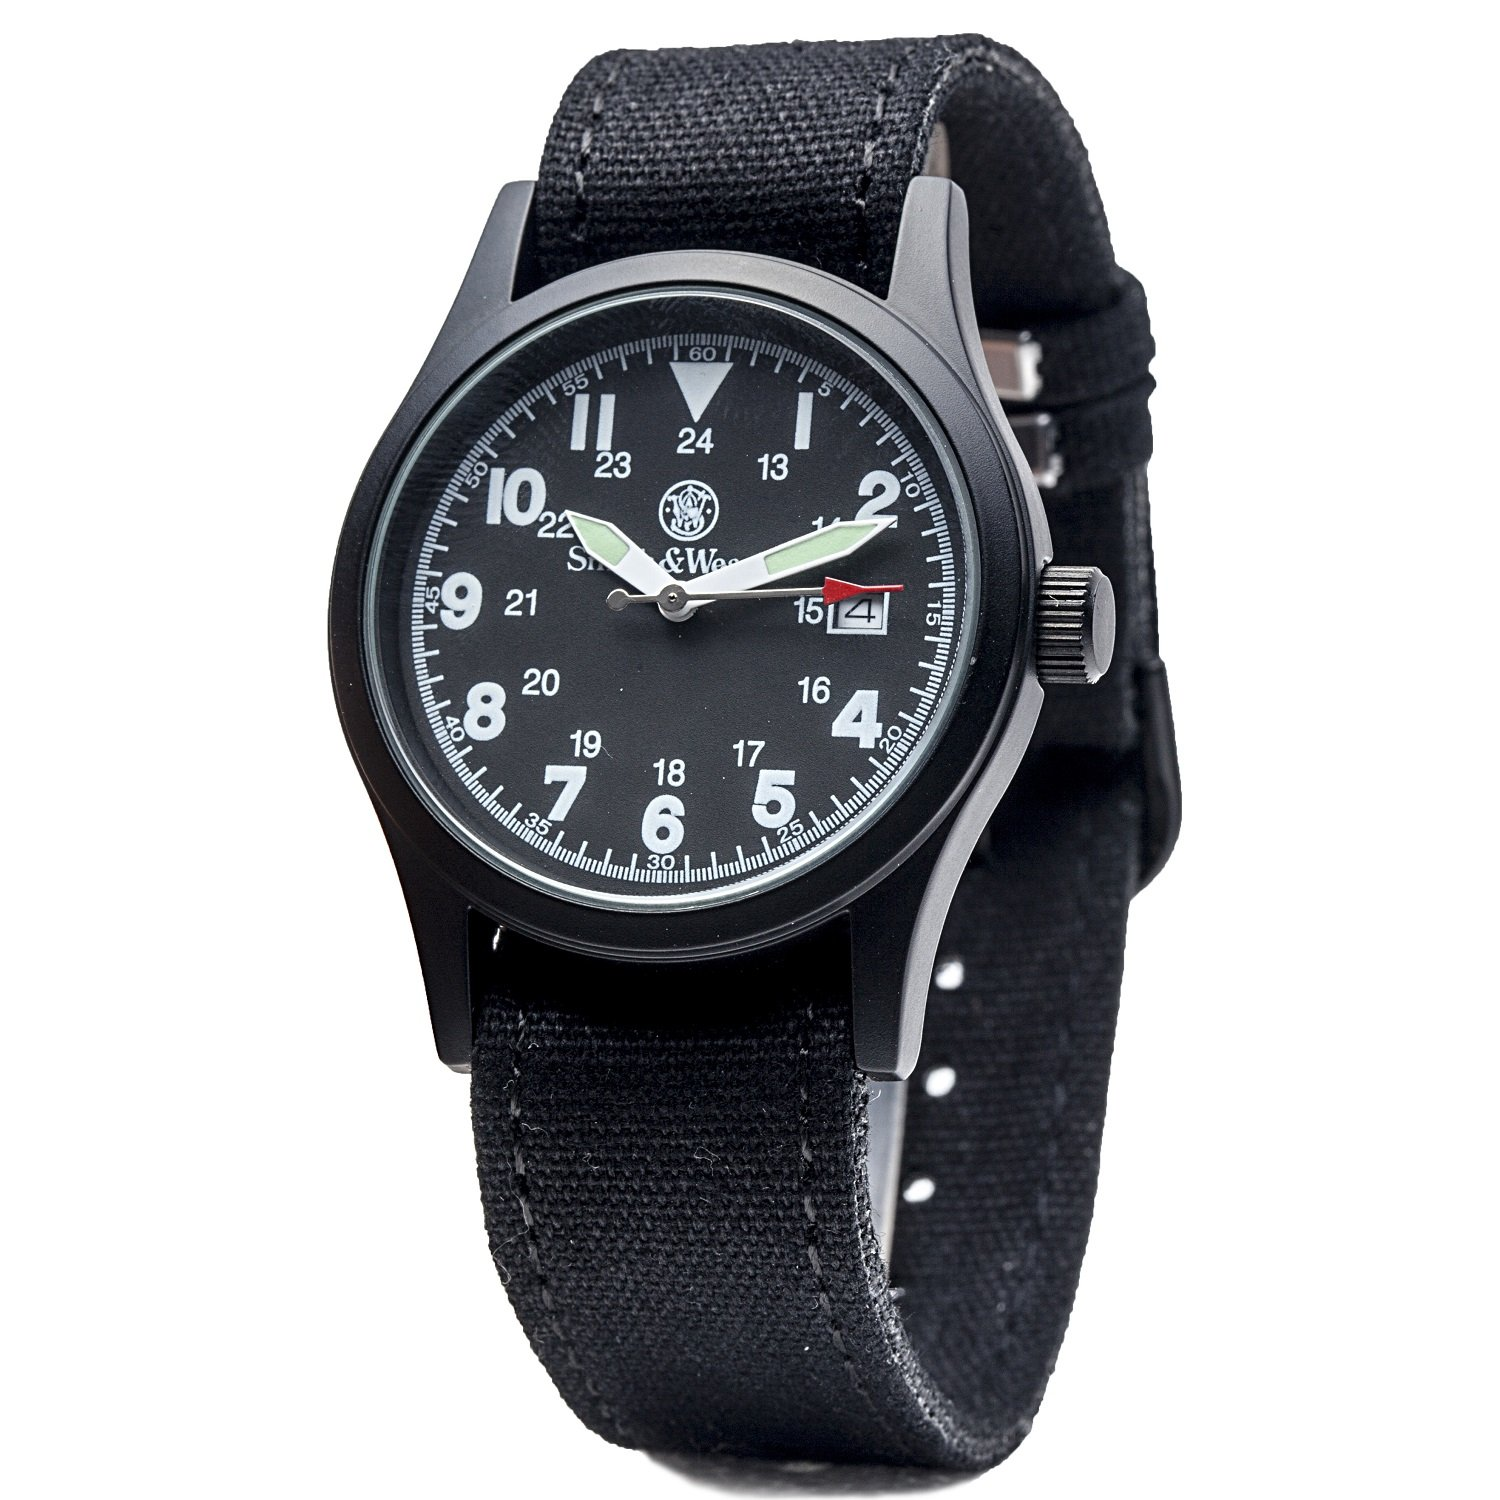 Amazon Smith & Wesson SWW 1464 BLK Military Watch with Three Interchangable Canvas Straps Watches